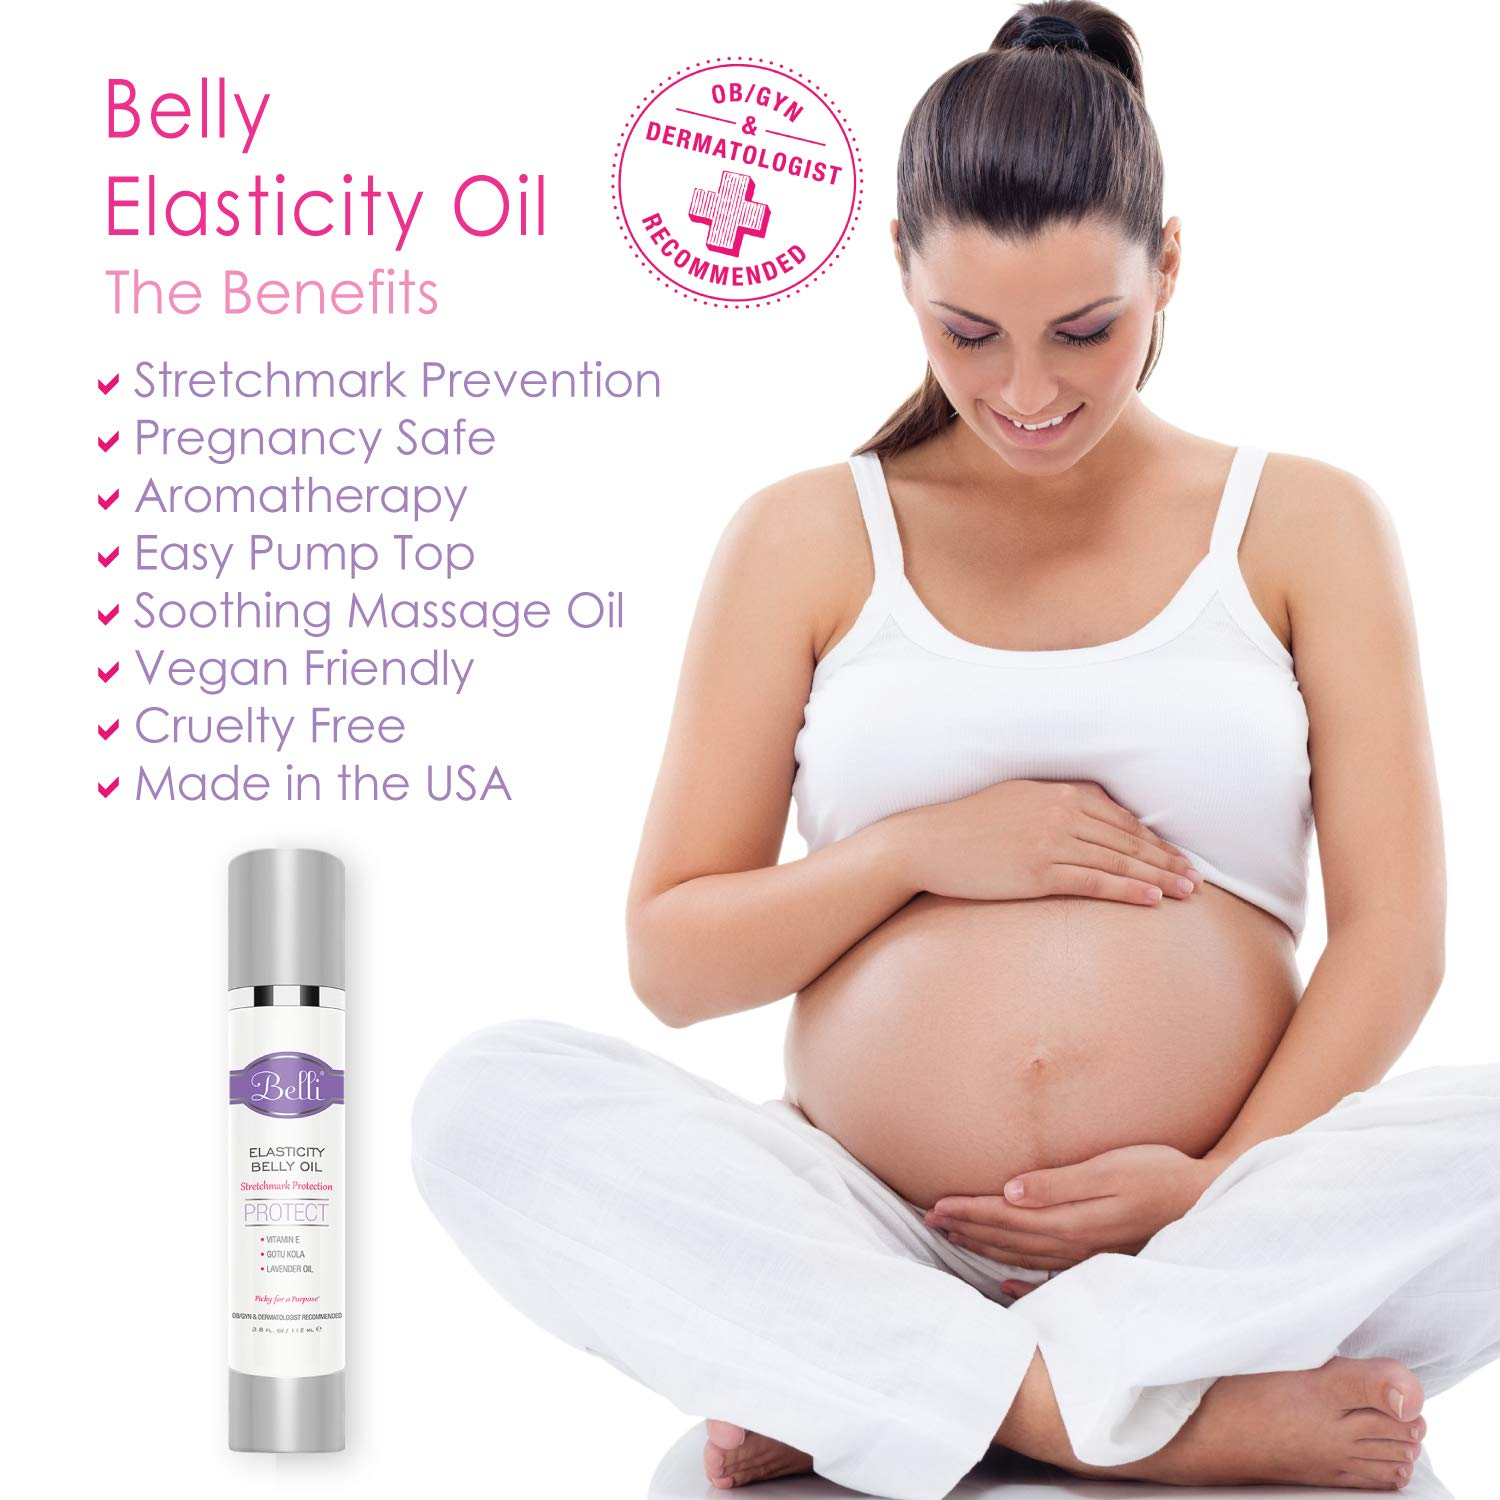 Belli Elasticity Belly Oil – Stretch Mark Protection for Smooth, Healthy Skin – OB/GYN and Dermatologist Recommended – 3.8 oz.